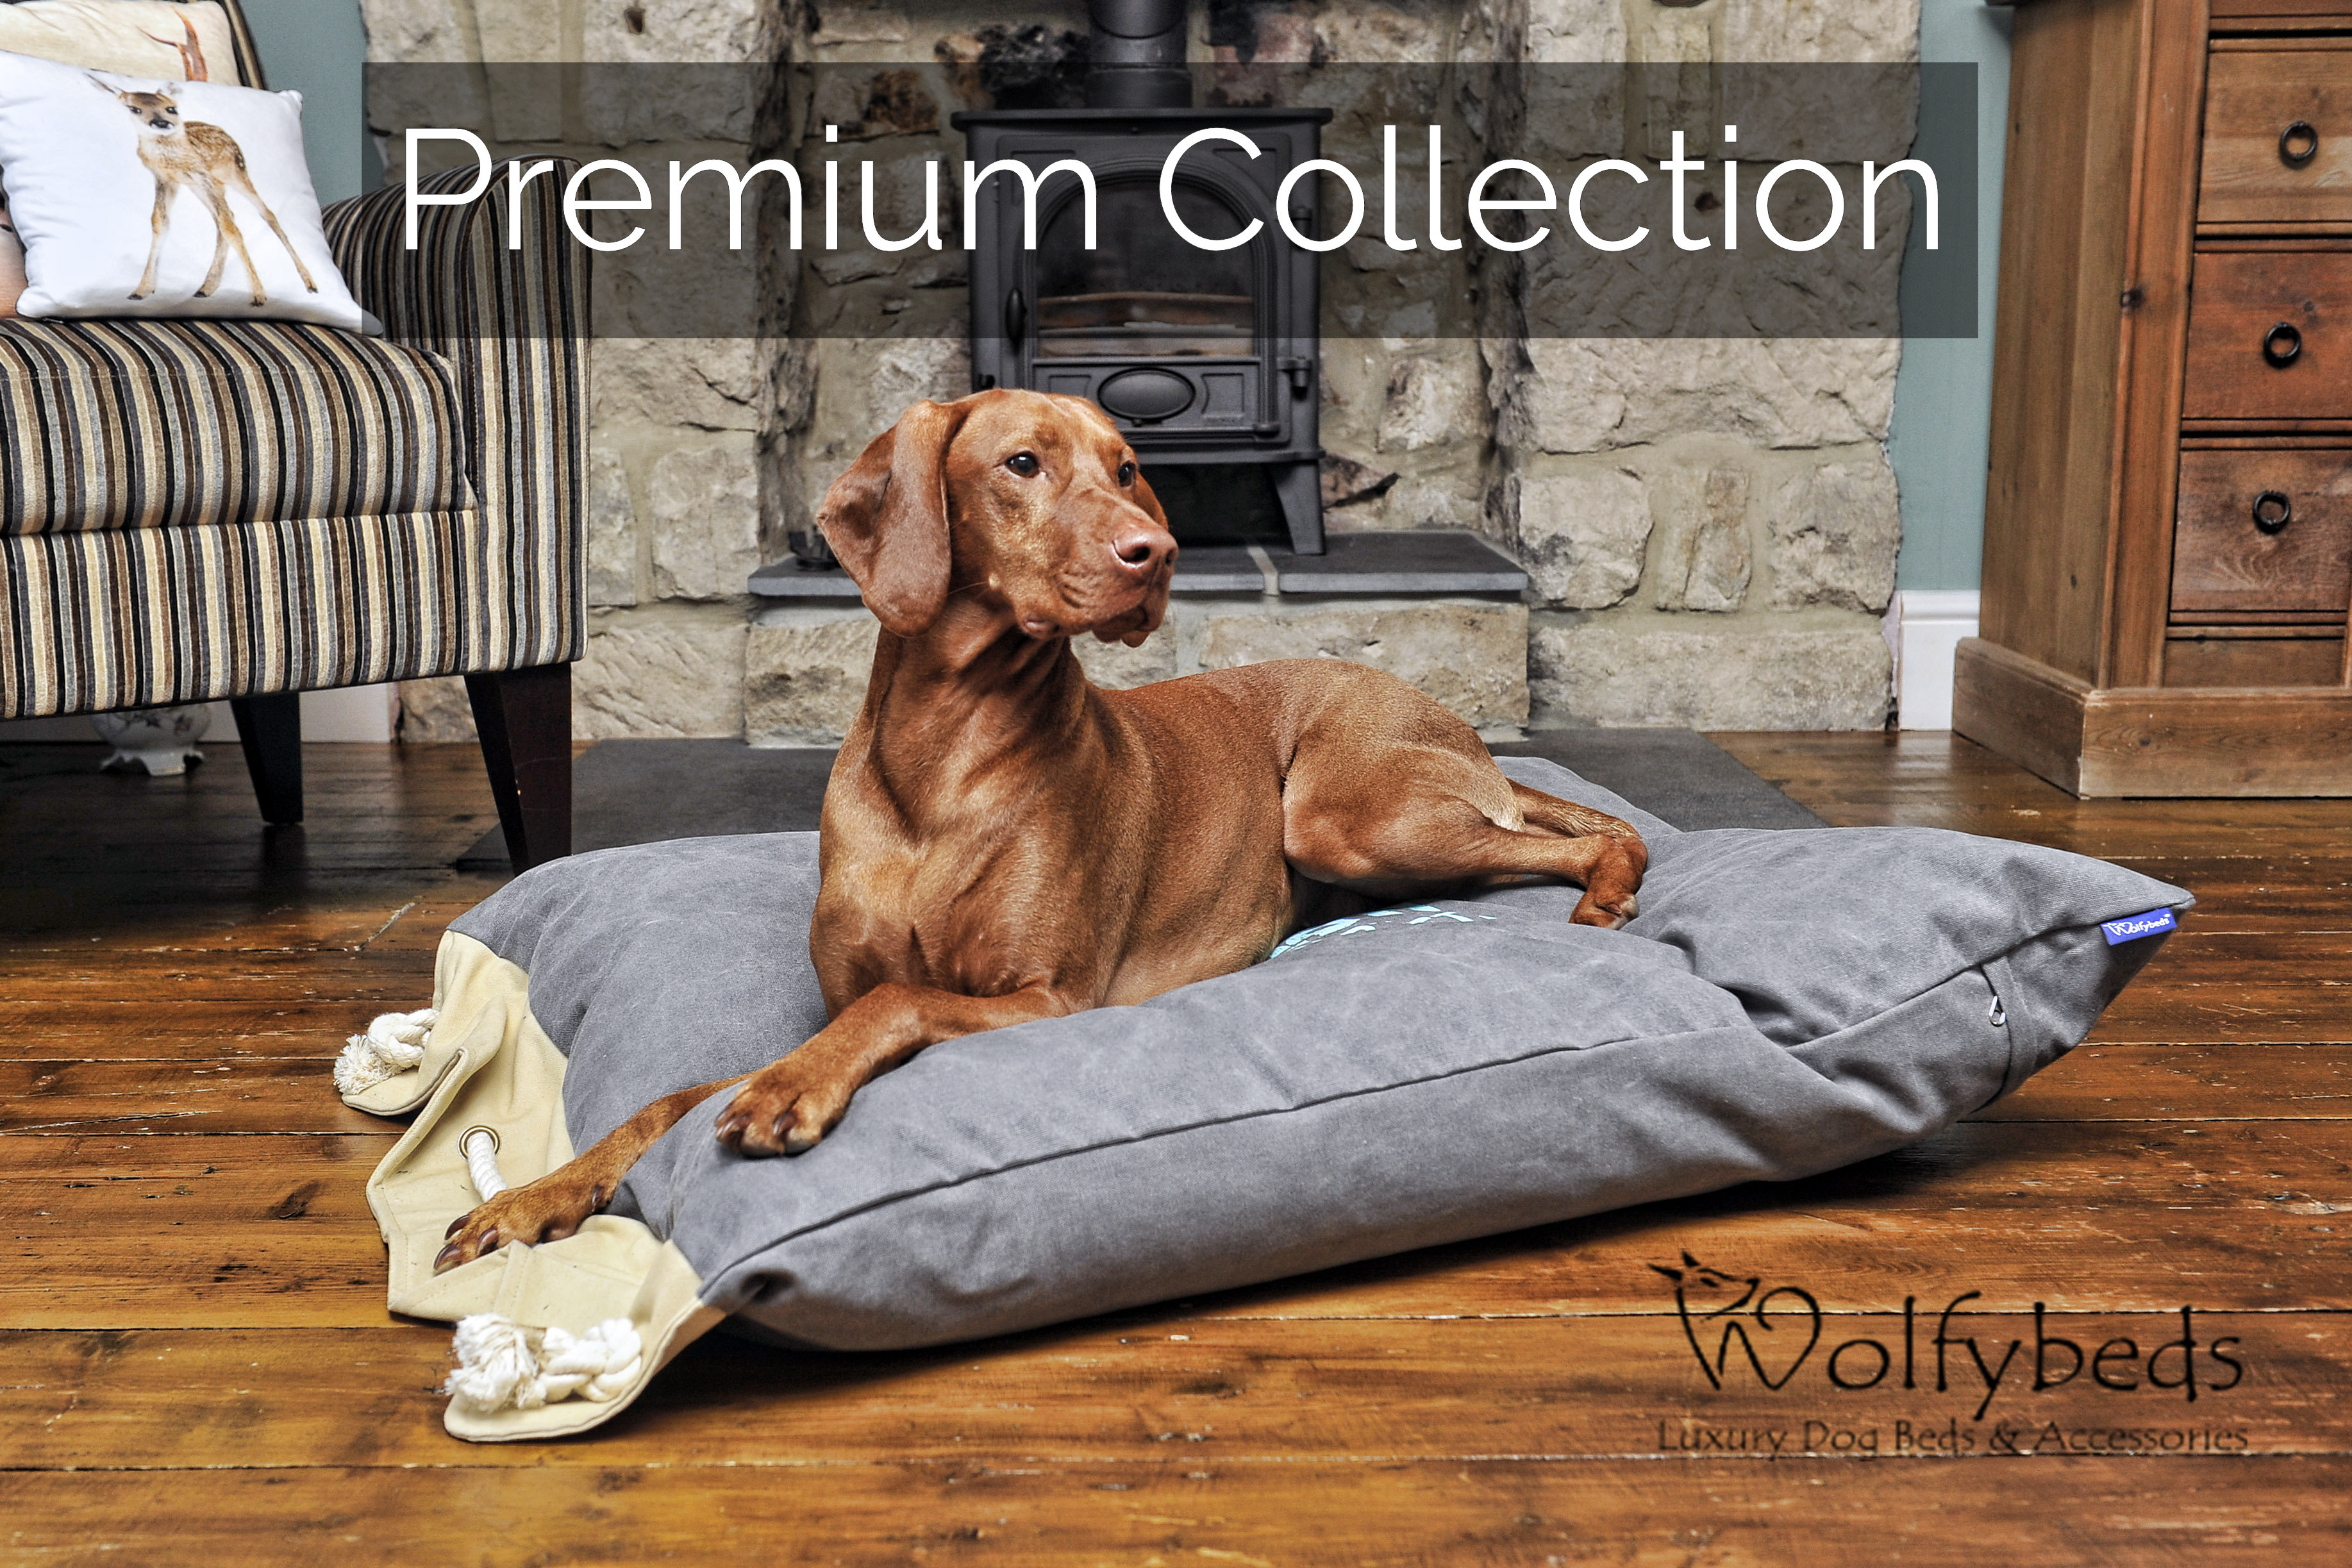 designer wolfybeds show bed pets more and beds me discerning owners welcome dog luxury for accessories to portland their pet